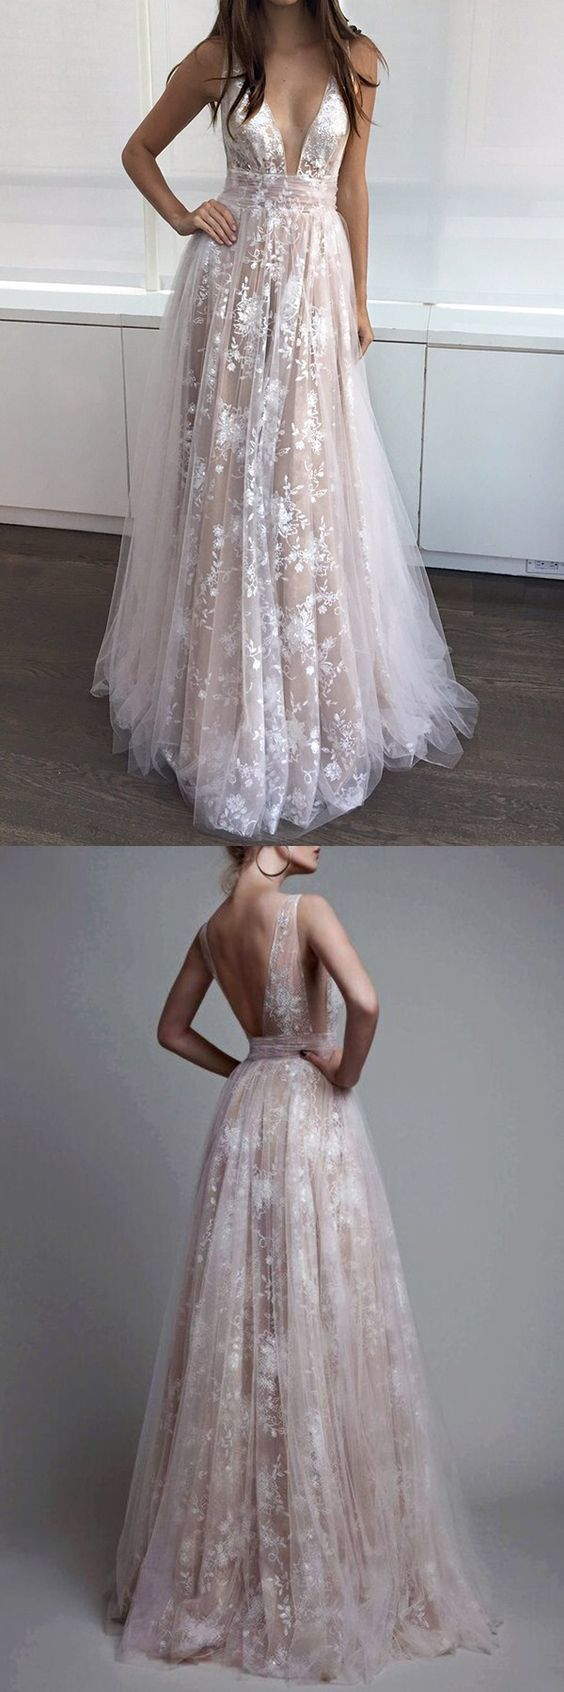 prom dresses,long prom dresses,prom party dresses,lace backless prom dresses